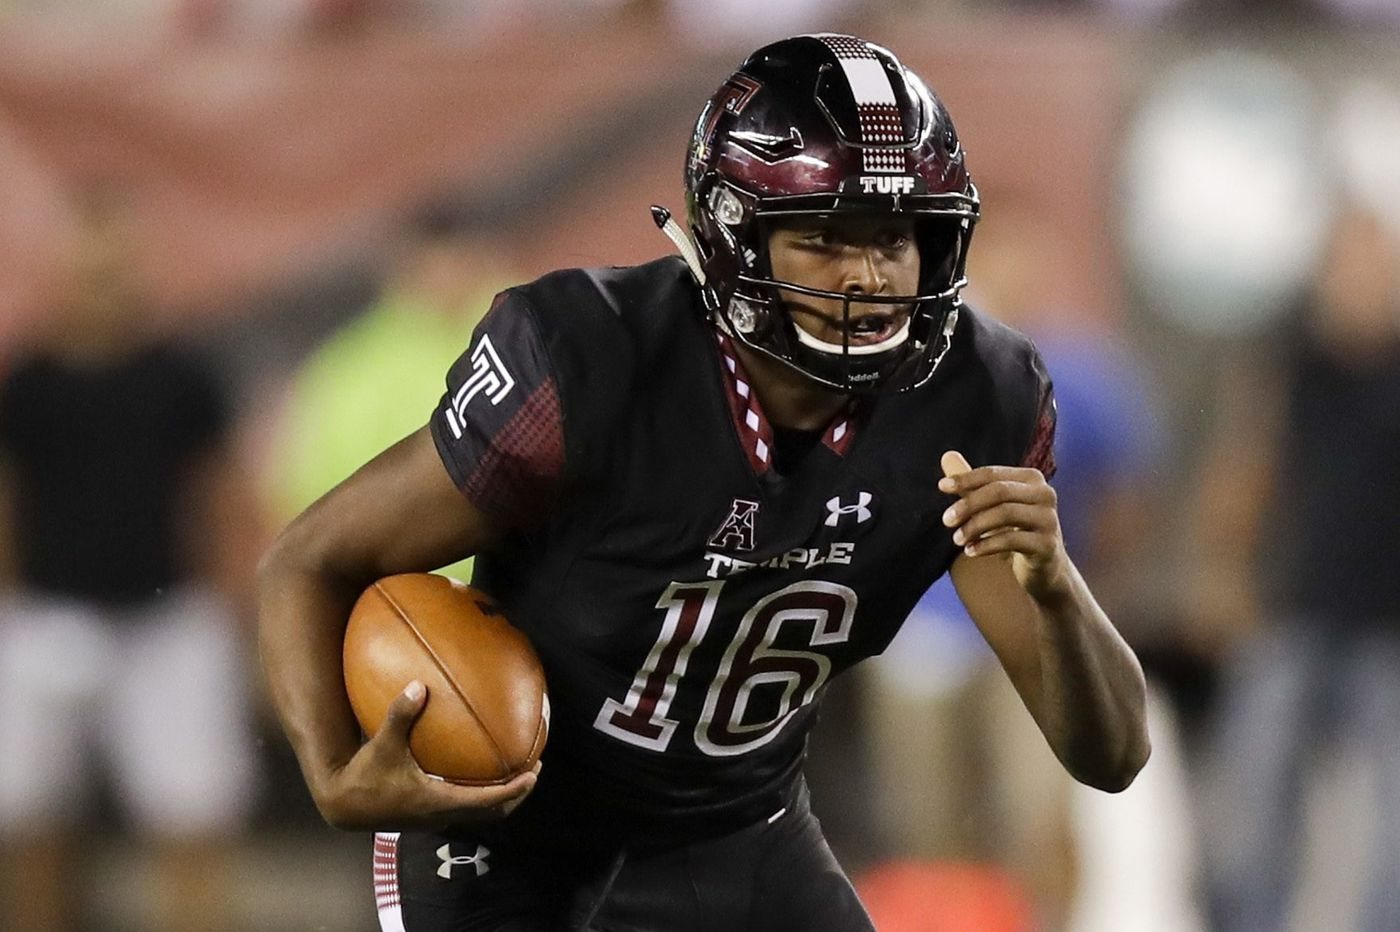 Temple backup quarterback Todd Centeio could be a (dual) threat off the bench